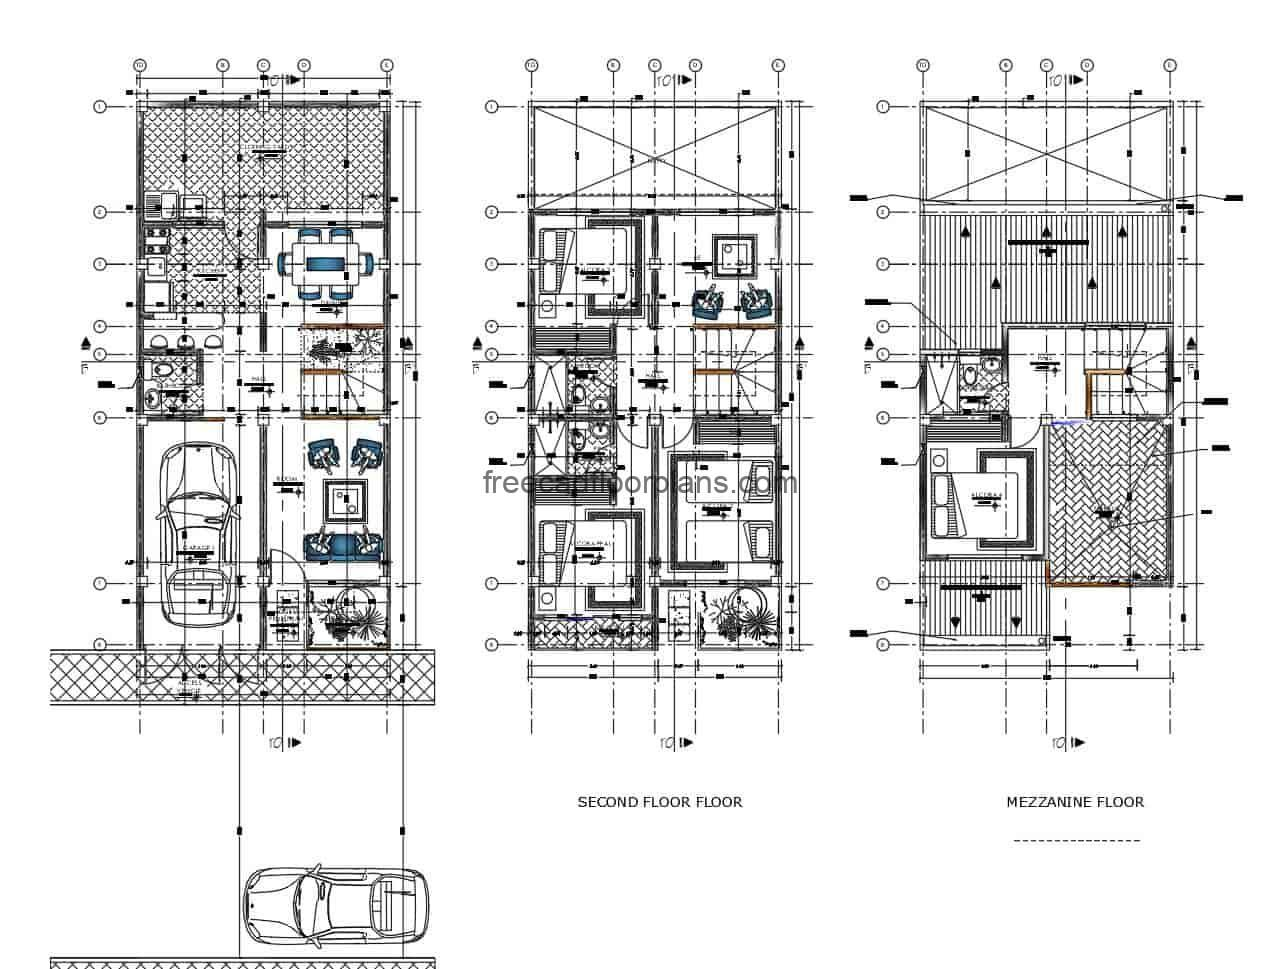 Complete project in DWG format of Autocad of family resilience of 2.5 levels, with social area in first level, private area in second level with three bedrooms and family room, and floor in attic with main room and terrace. Plan for free download, architectural plans, sizing, elevations, sections and structural and foundation details